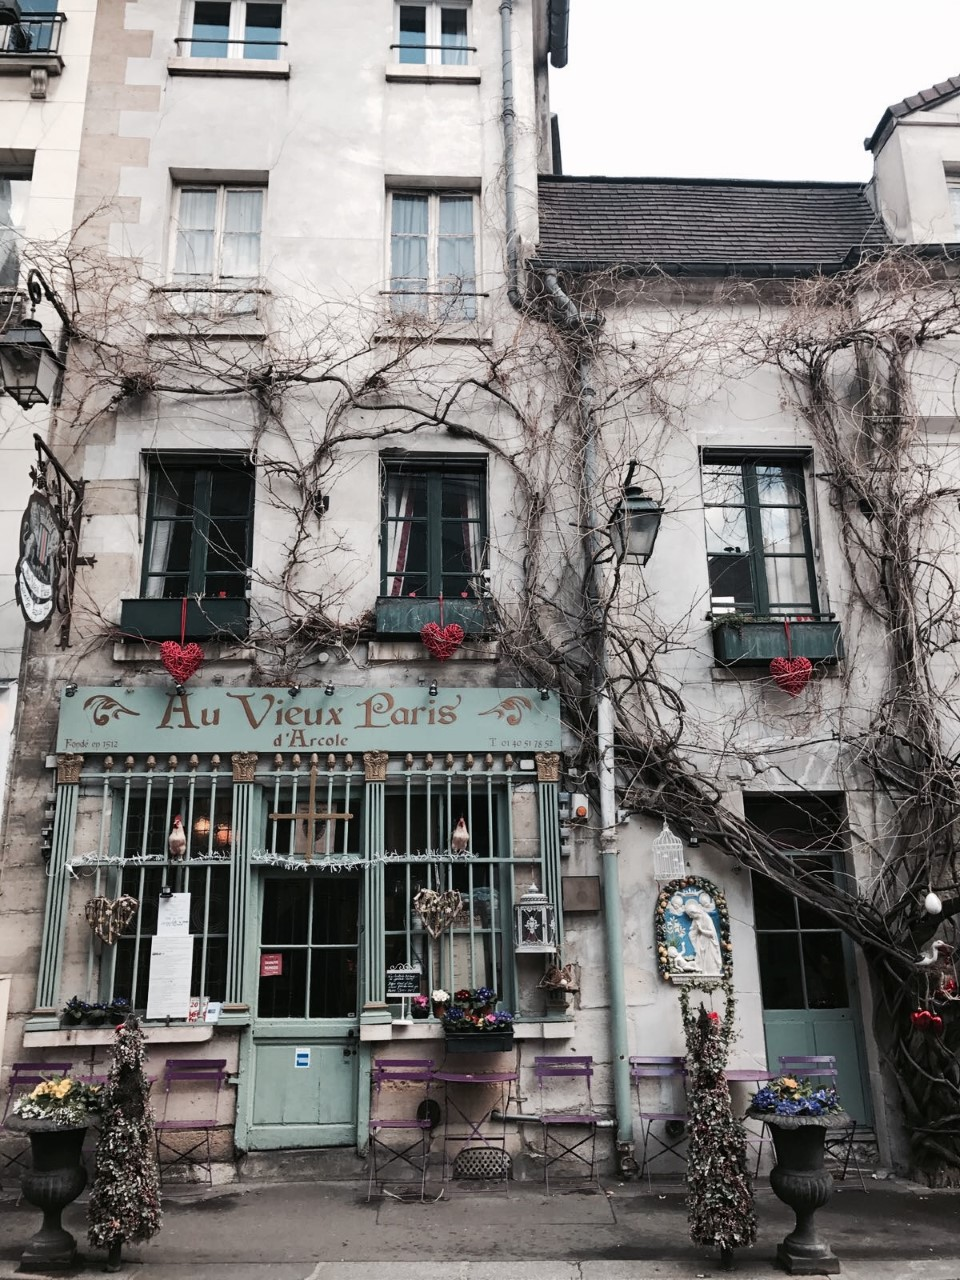 AU VIEUX PARIS - Wonderful little restaurant with impeccable exterior.